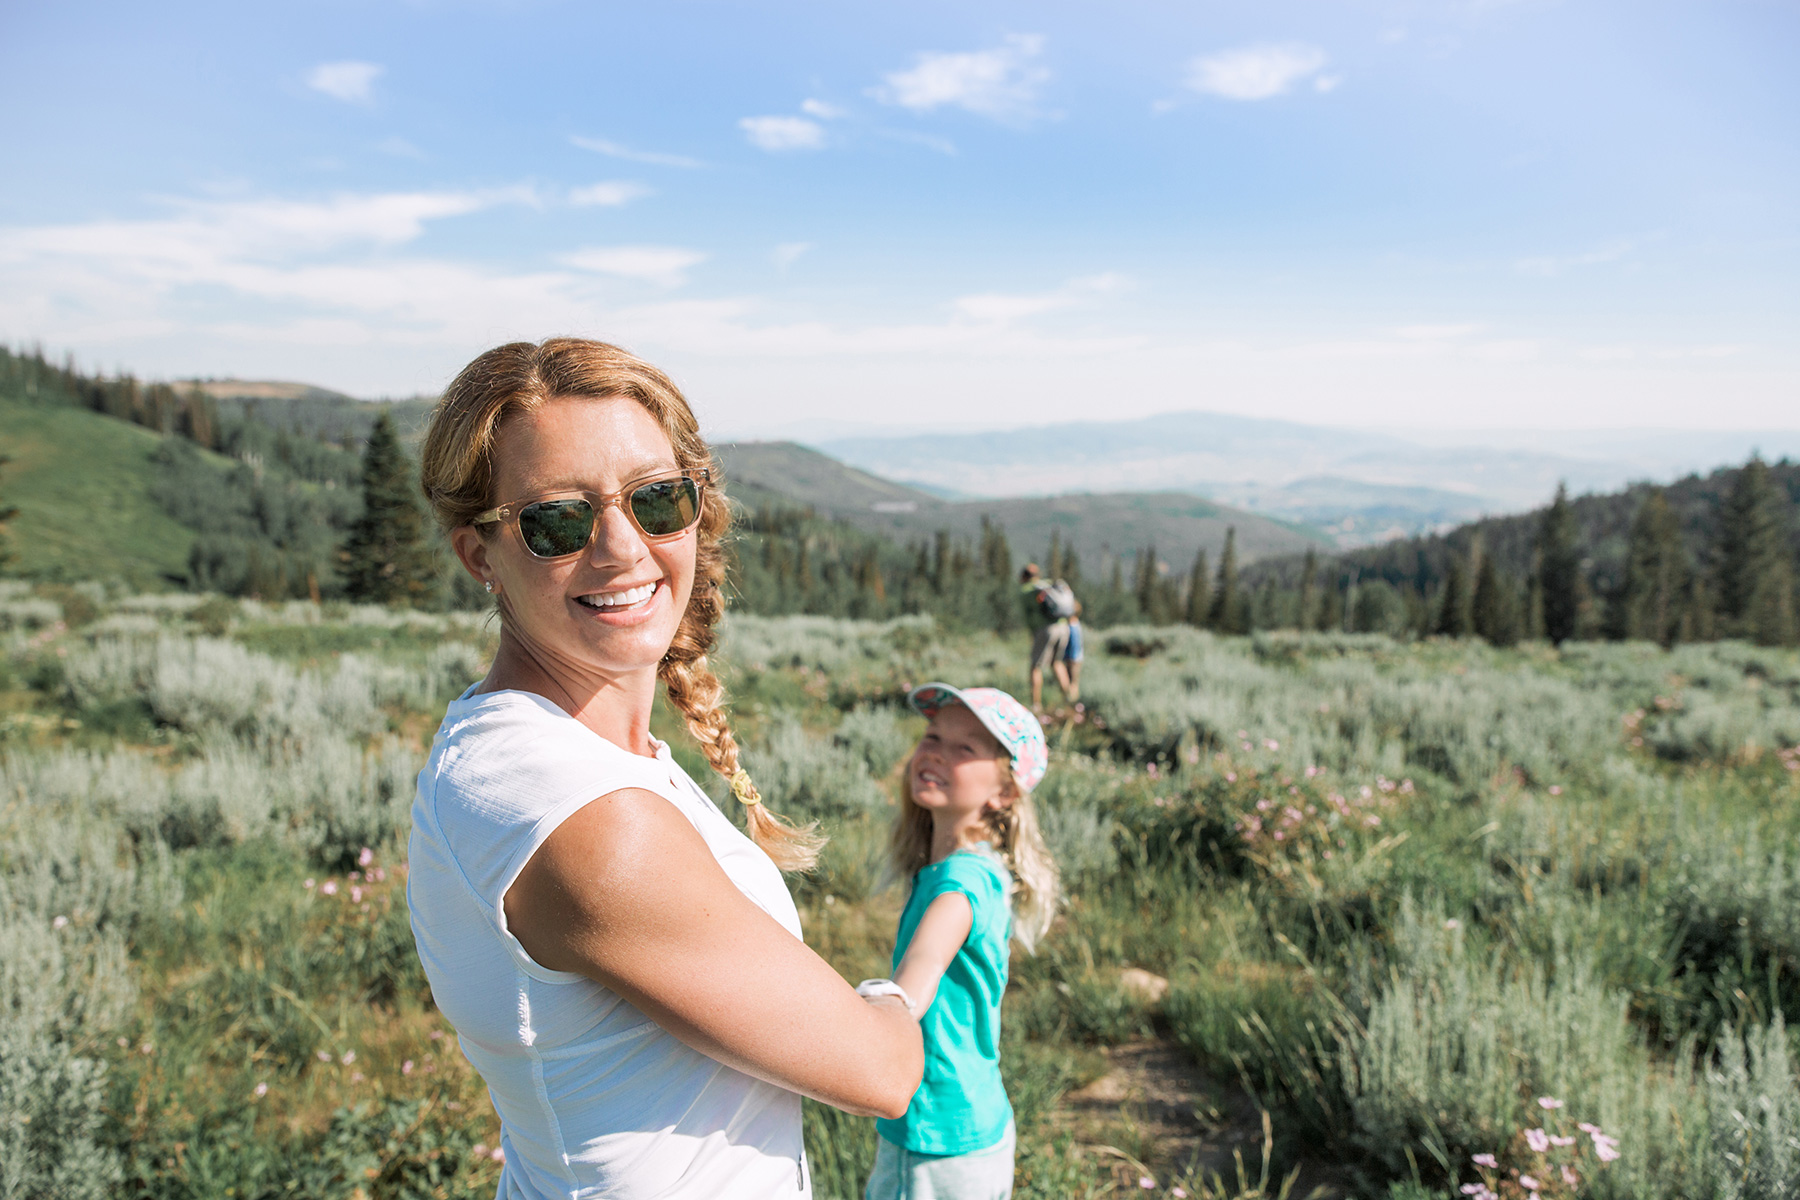 Things to do in park city winter summer activities utah mom and daughter hiking sciox Gallery